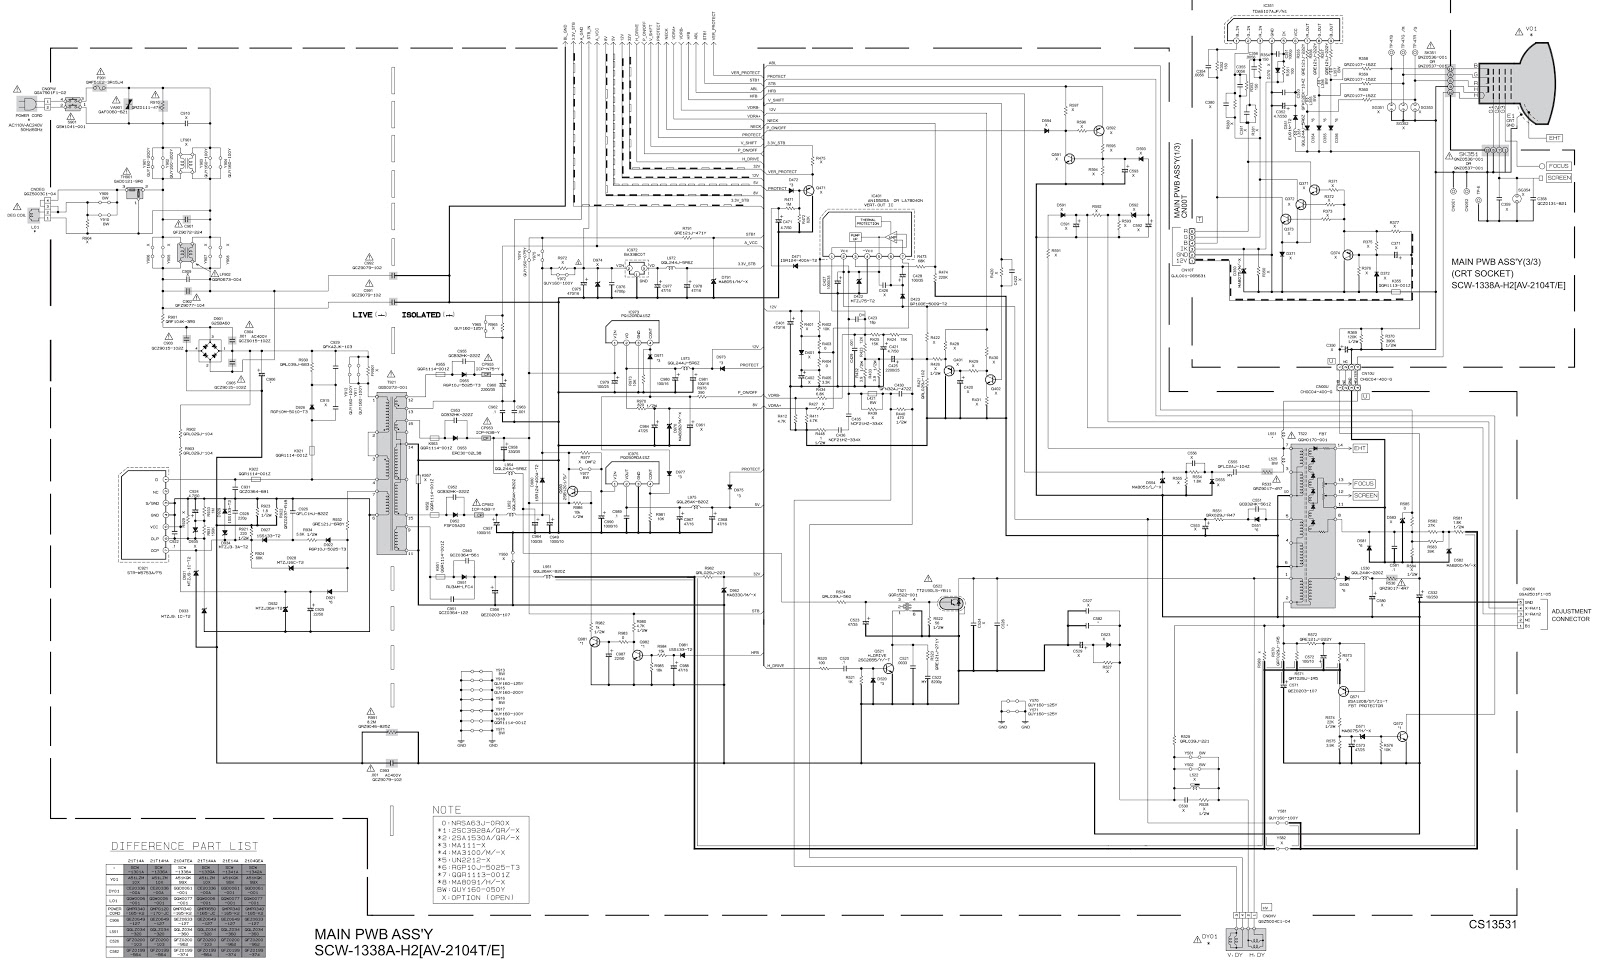 jvc tv wiring diagram jvc image wiring diagram block diagram of crt the wiring diagram on jvc tv wiring diagram